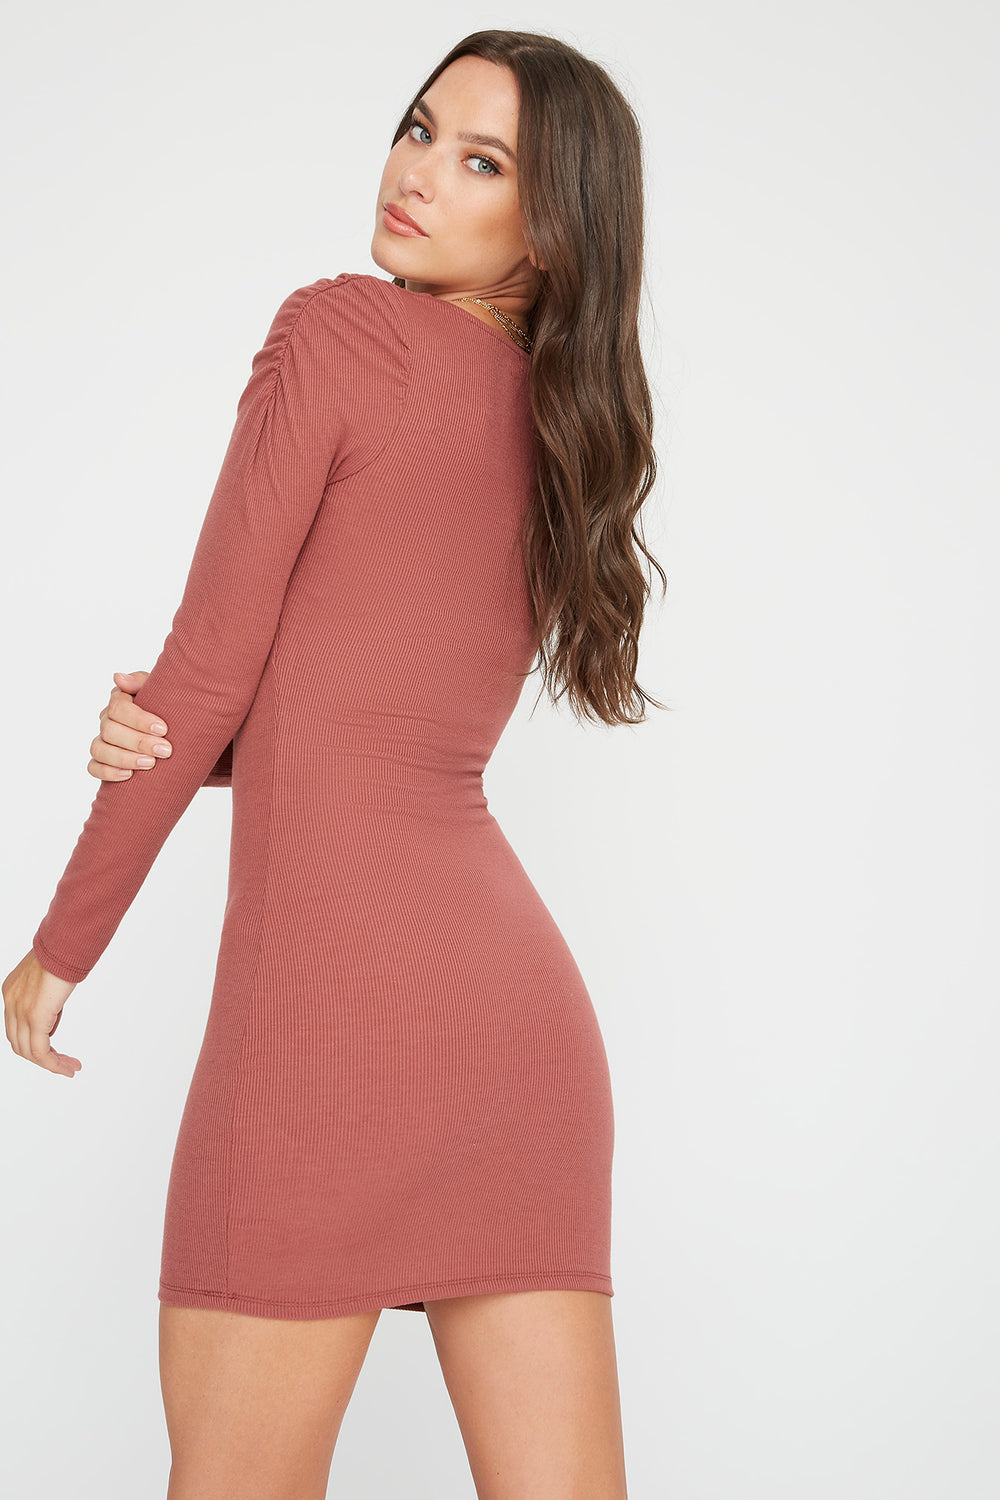 Ribbed Puff Sleeve Square Neck Mini Dress Dark Pink